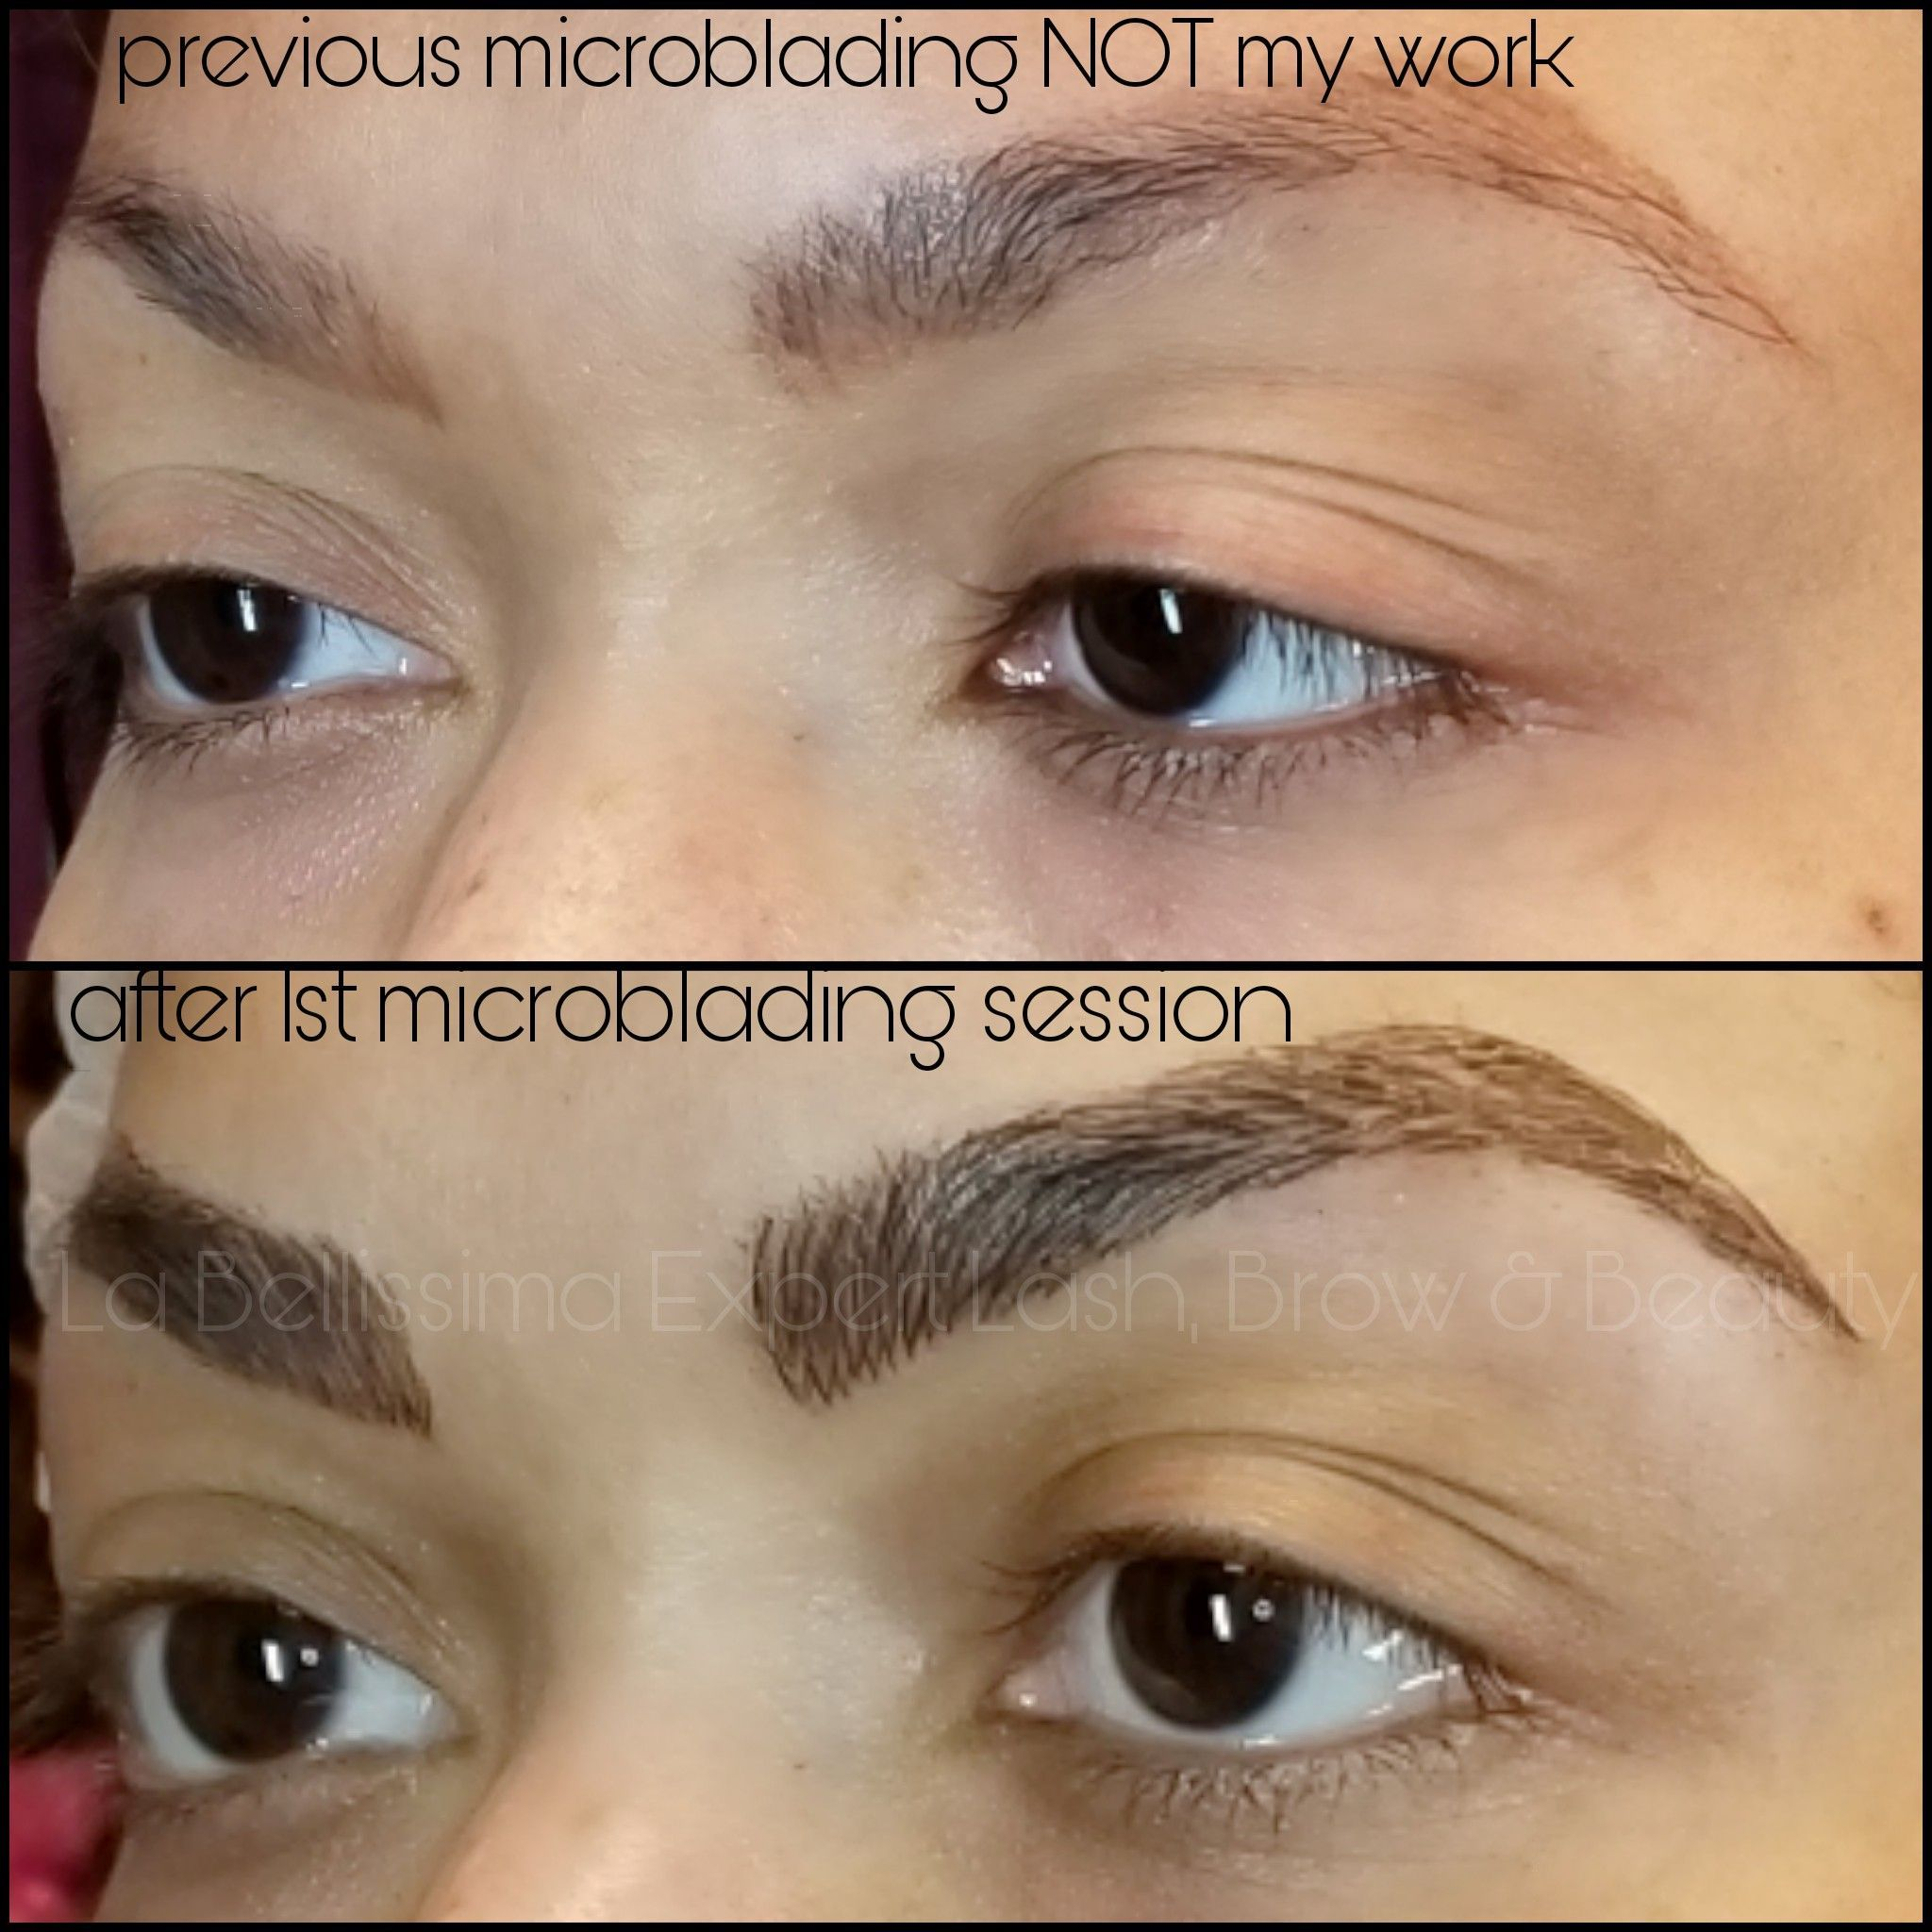 Before (previous faded, slightly orange microblading not my